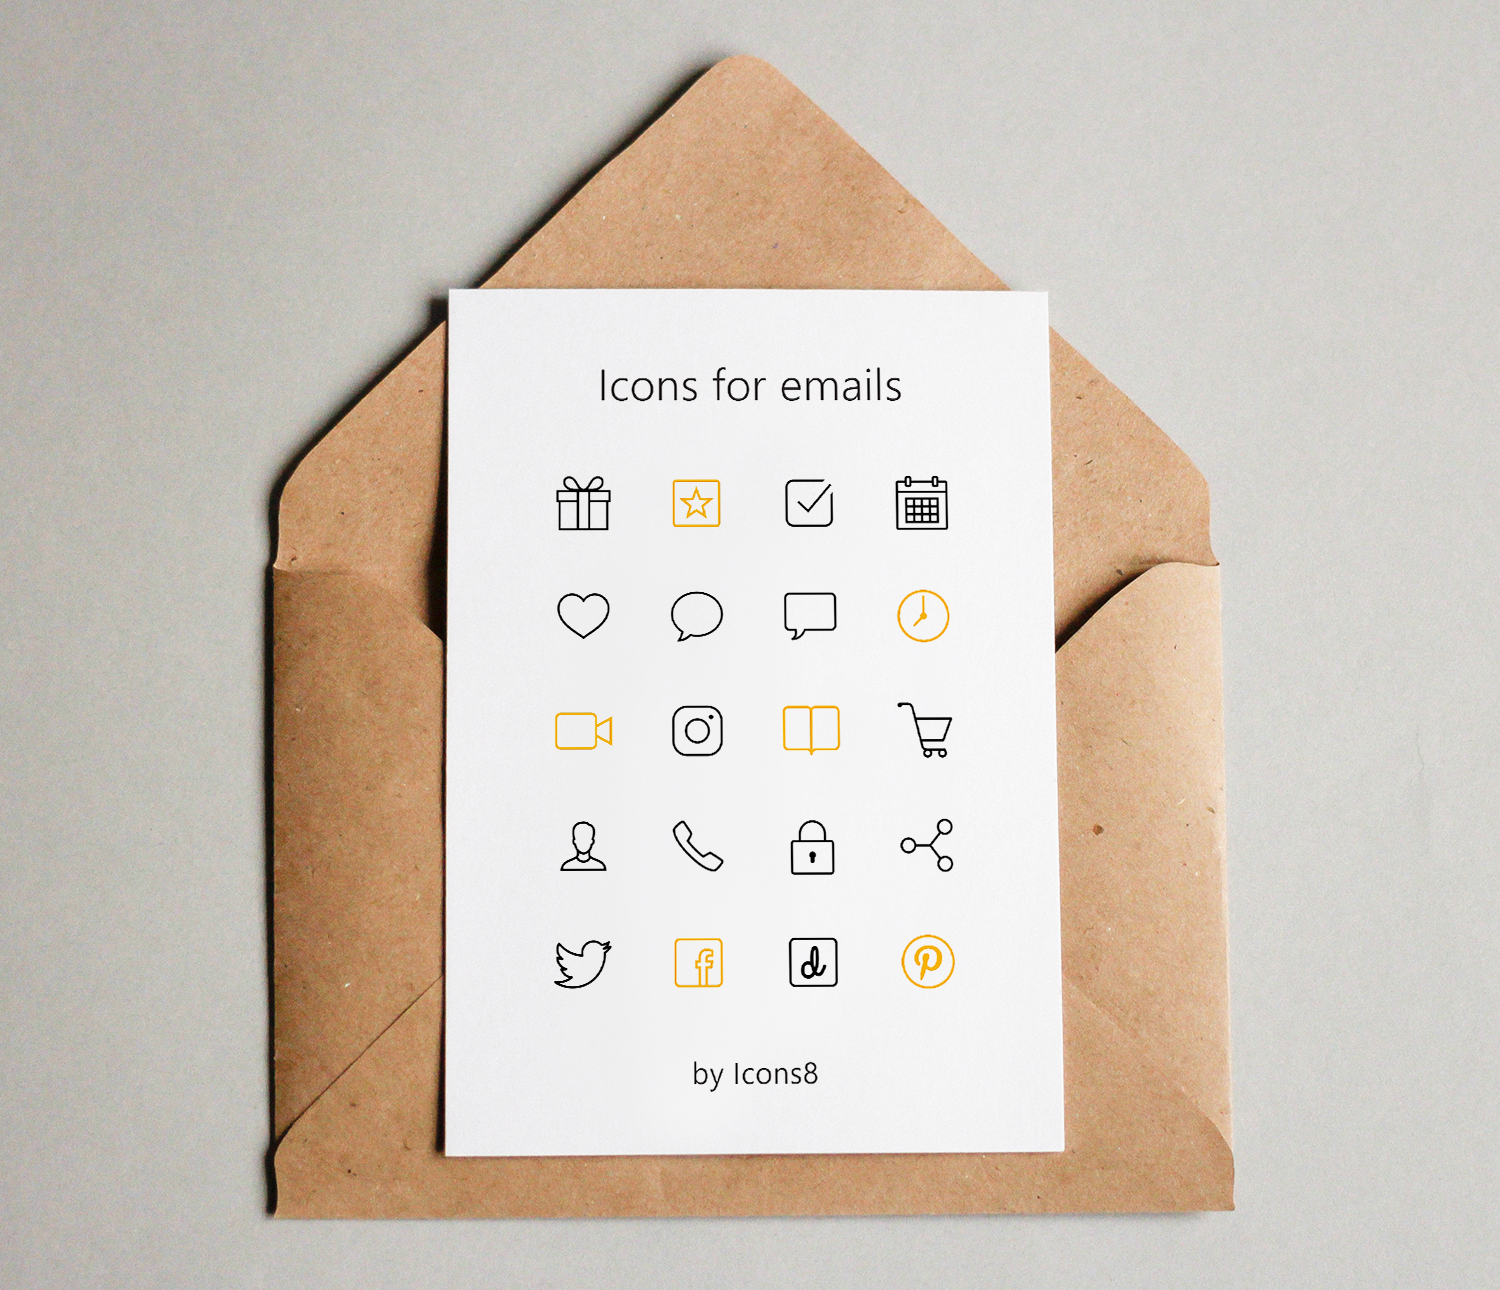 5 ways to use the power of icons in email marketing